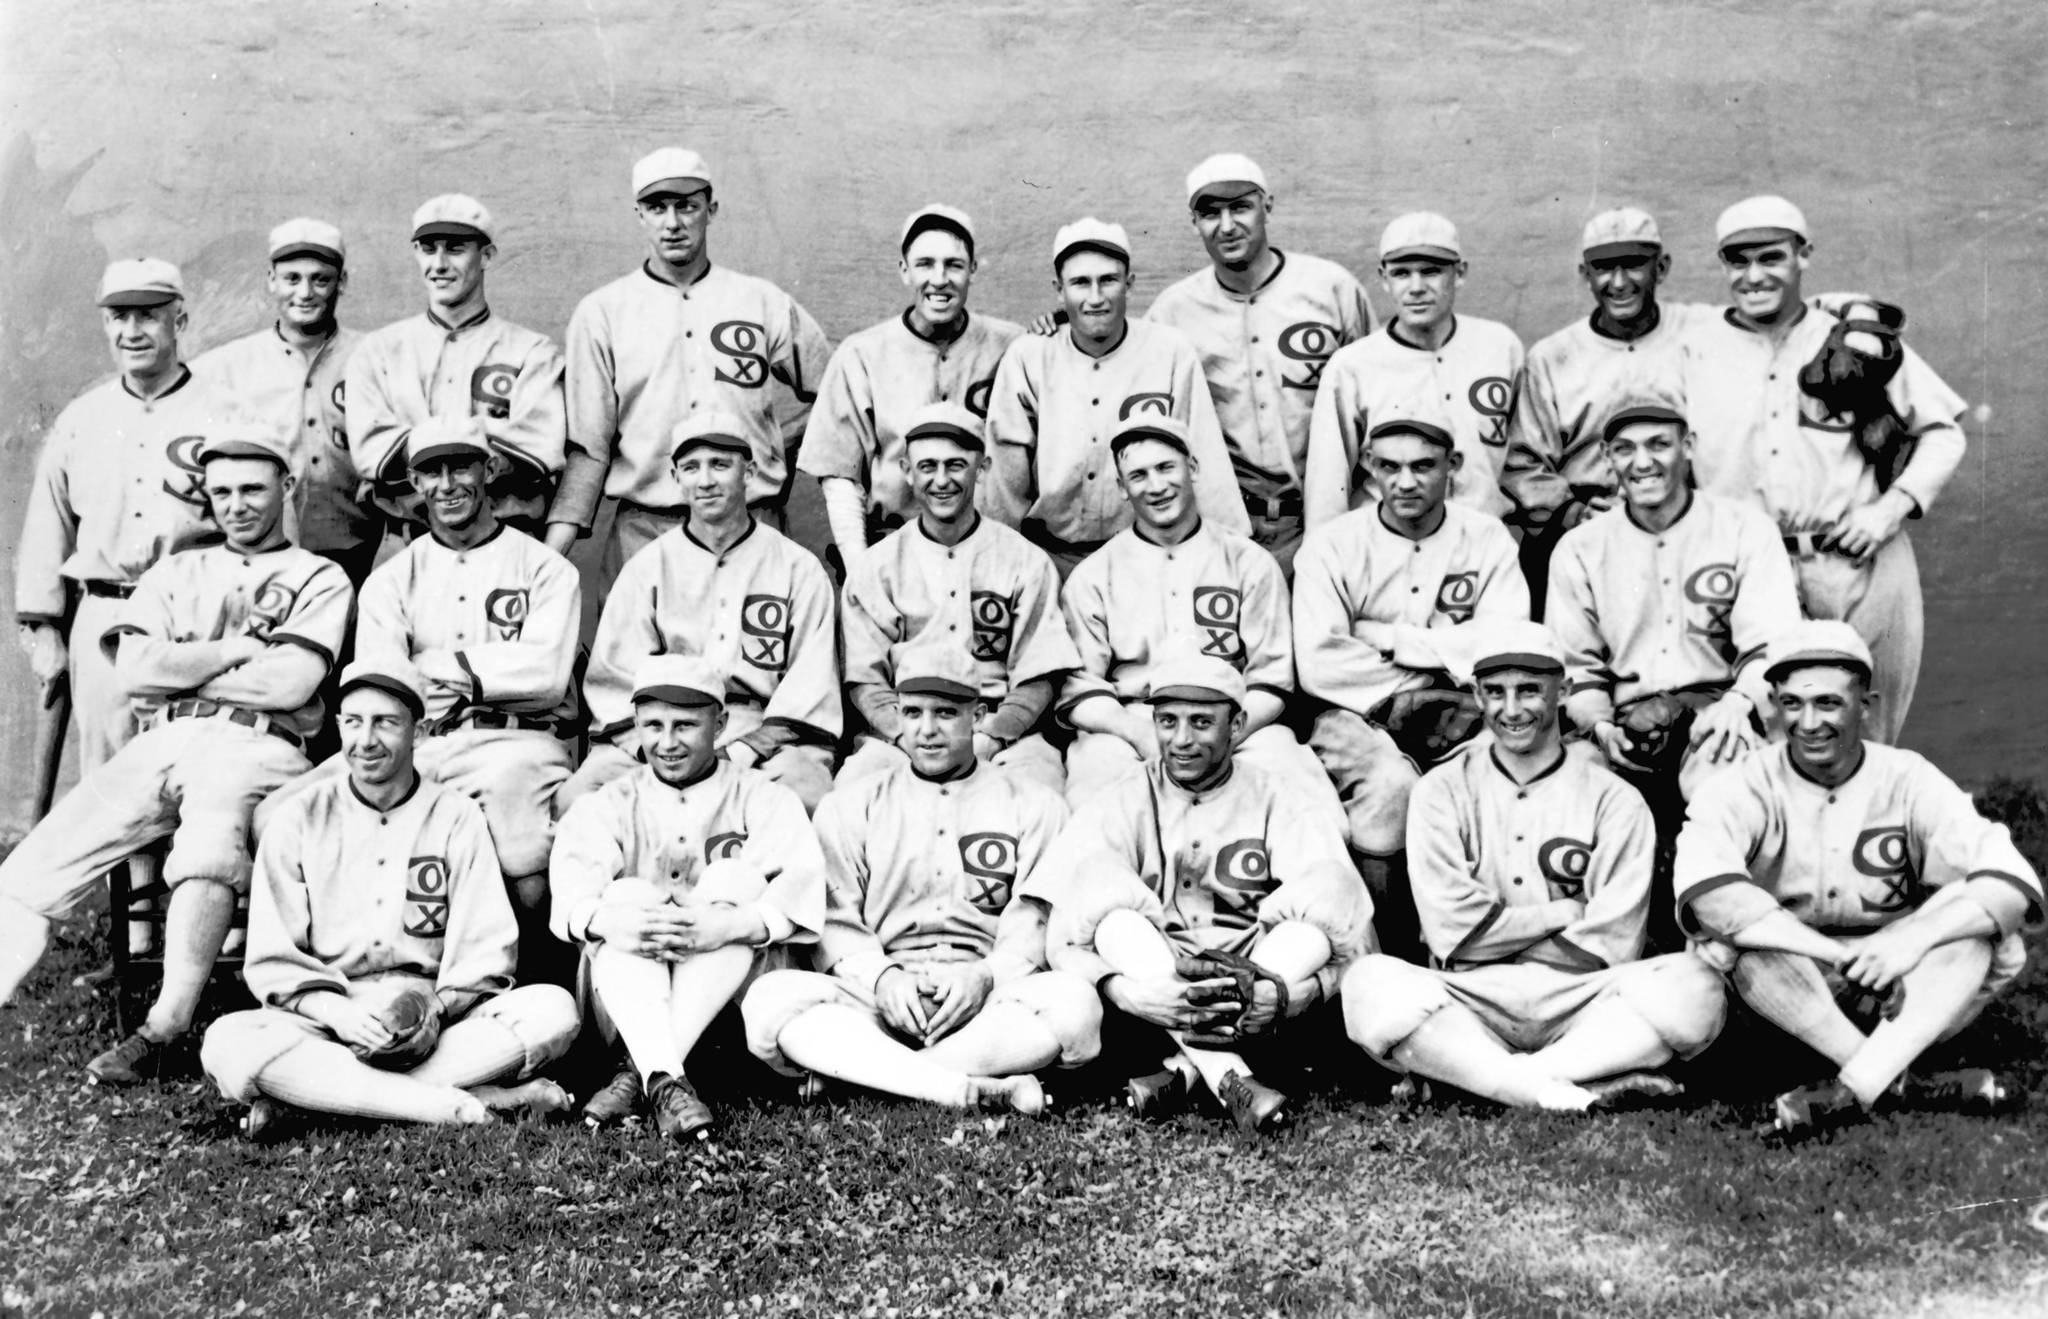 flashback story of black sox scandal still resonates  flashback story of 1919 black sox scandal still resonates chicago tribune